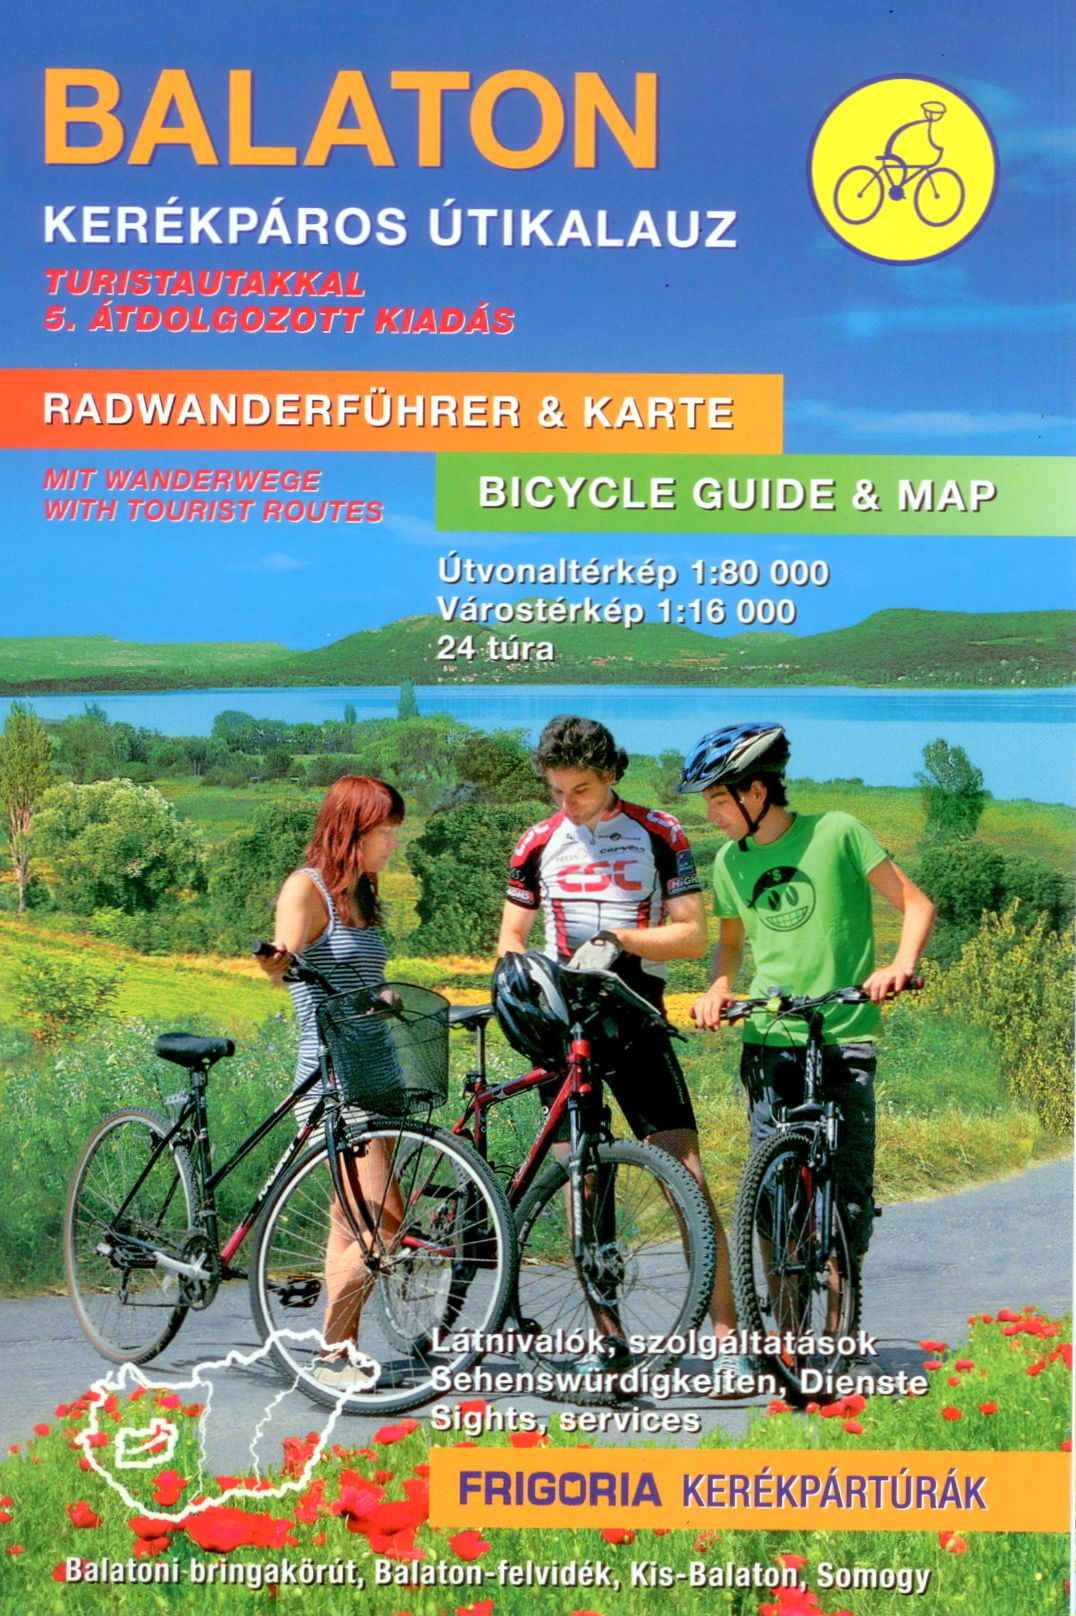 Bicycle atlas and guide of Balaton and surroundings. Format: A5, 144 pages, spiralbound Detailed info also in English and German